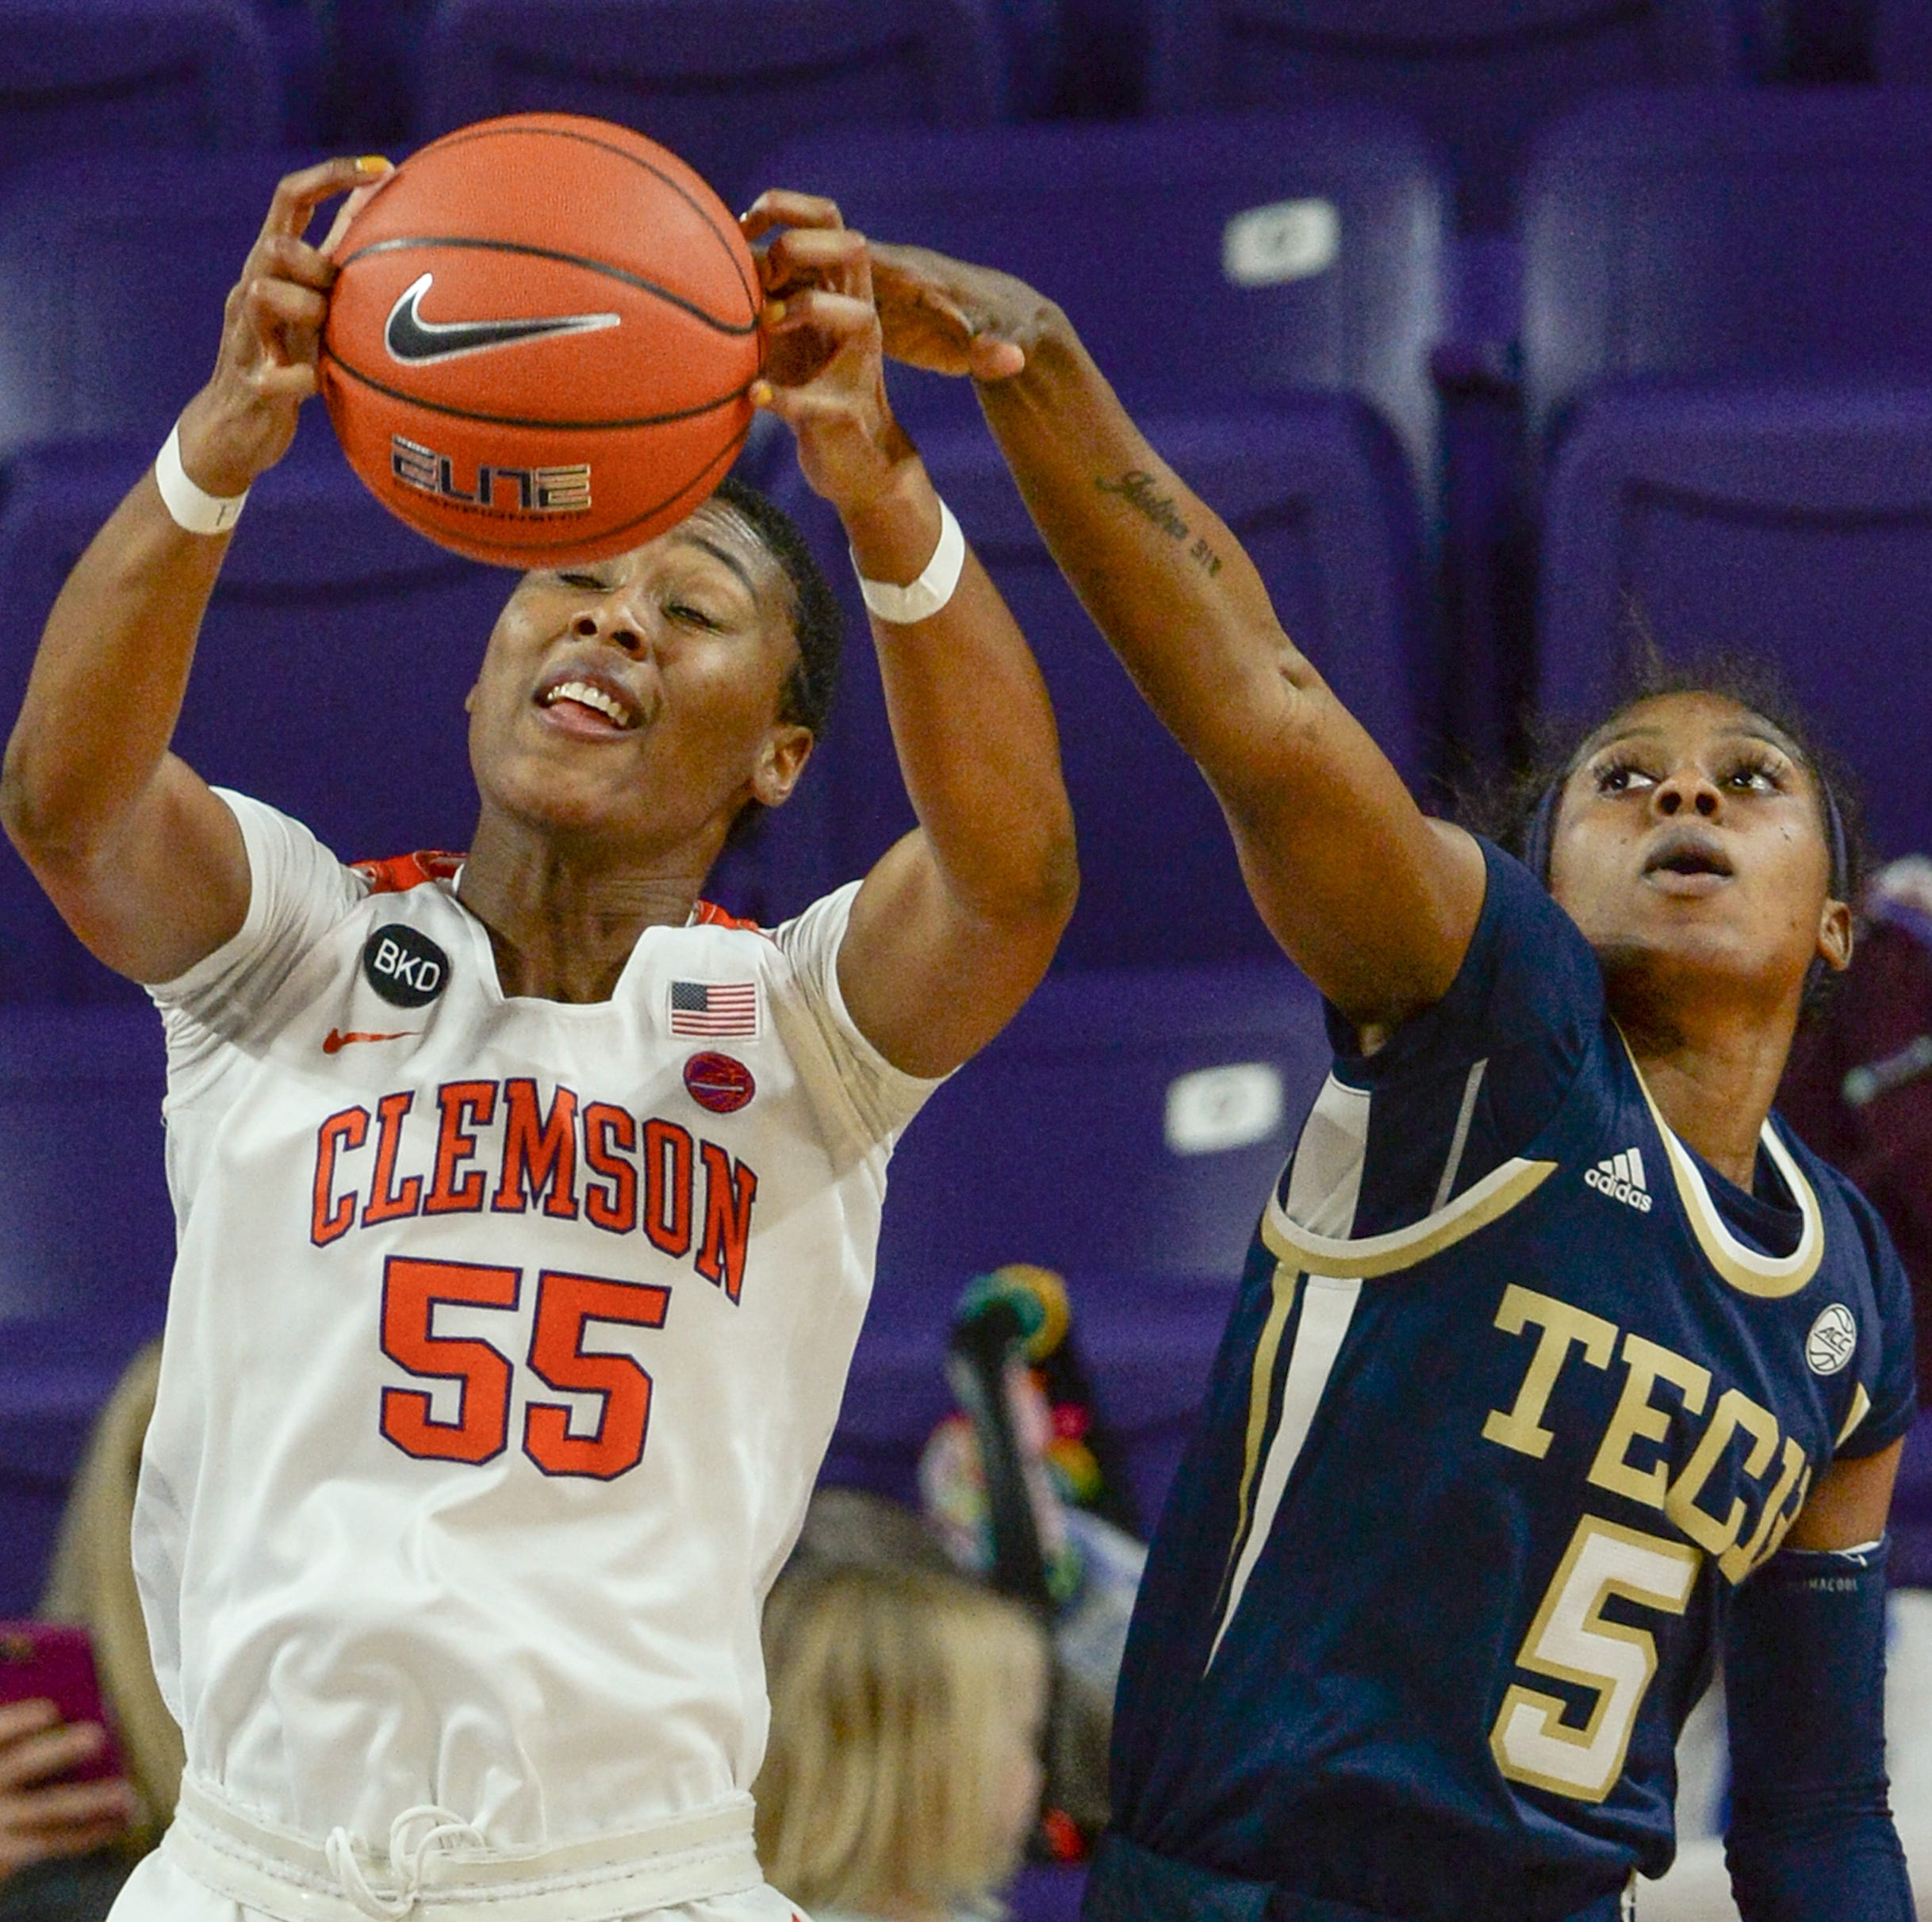 The Clemson women's basketball team is off to a great start. Here's why.